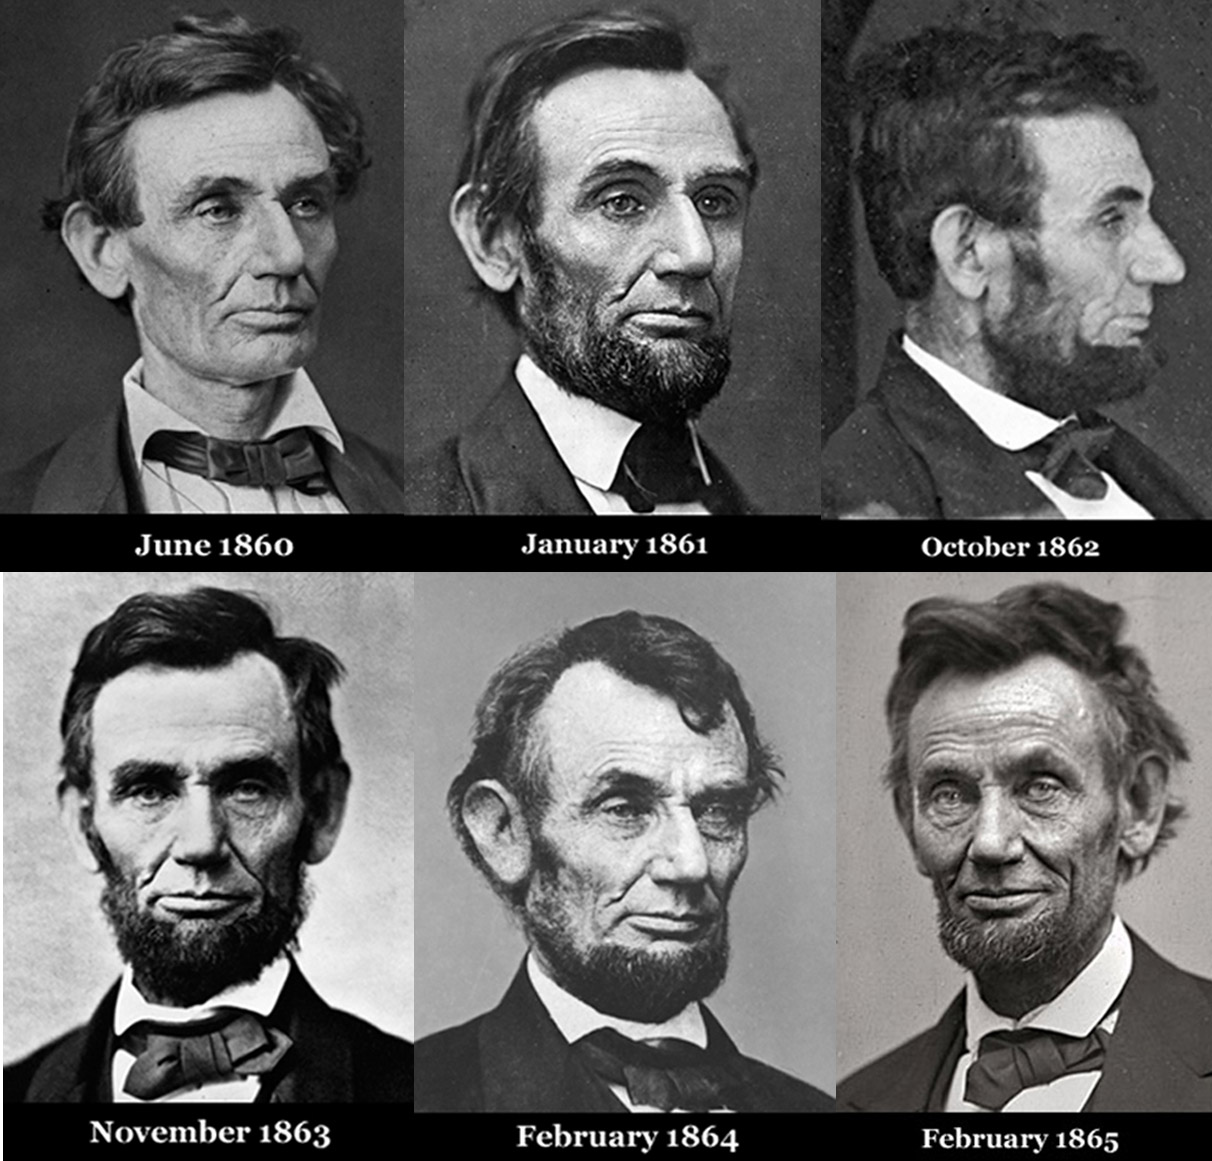 lincoln and the civil war For much of the civil war, mr lincoln juggled conflicting pressures and politicians on the issue of slavery but the movement toward emancipation of all black americans was inexorable after the final emancipation proclamation was released on january 1, 1863,.